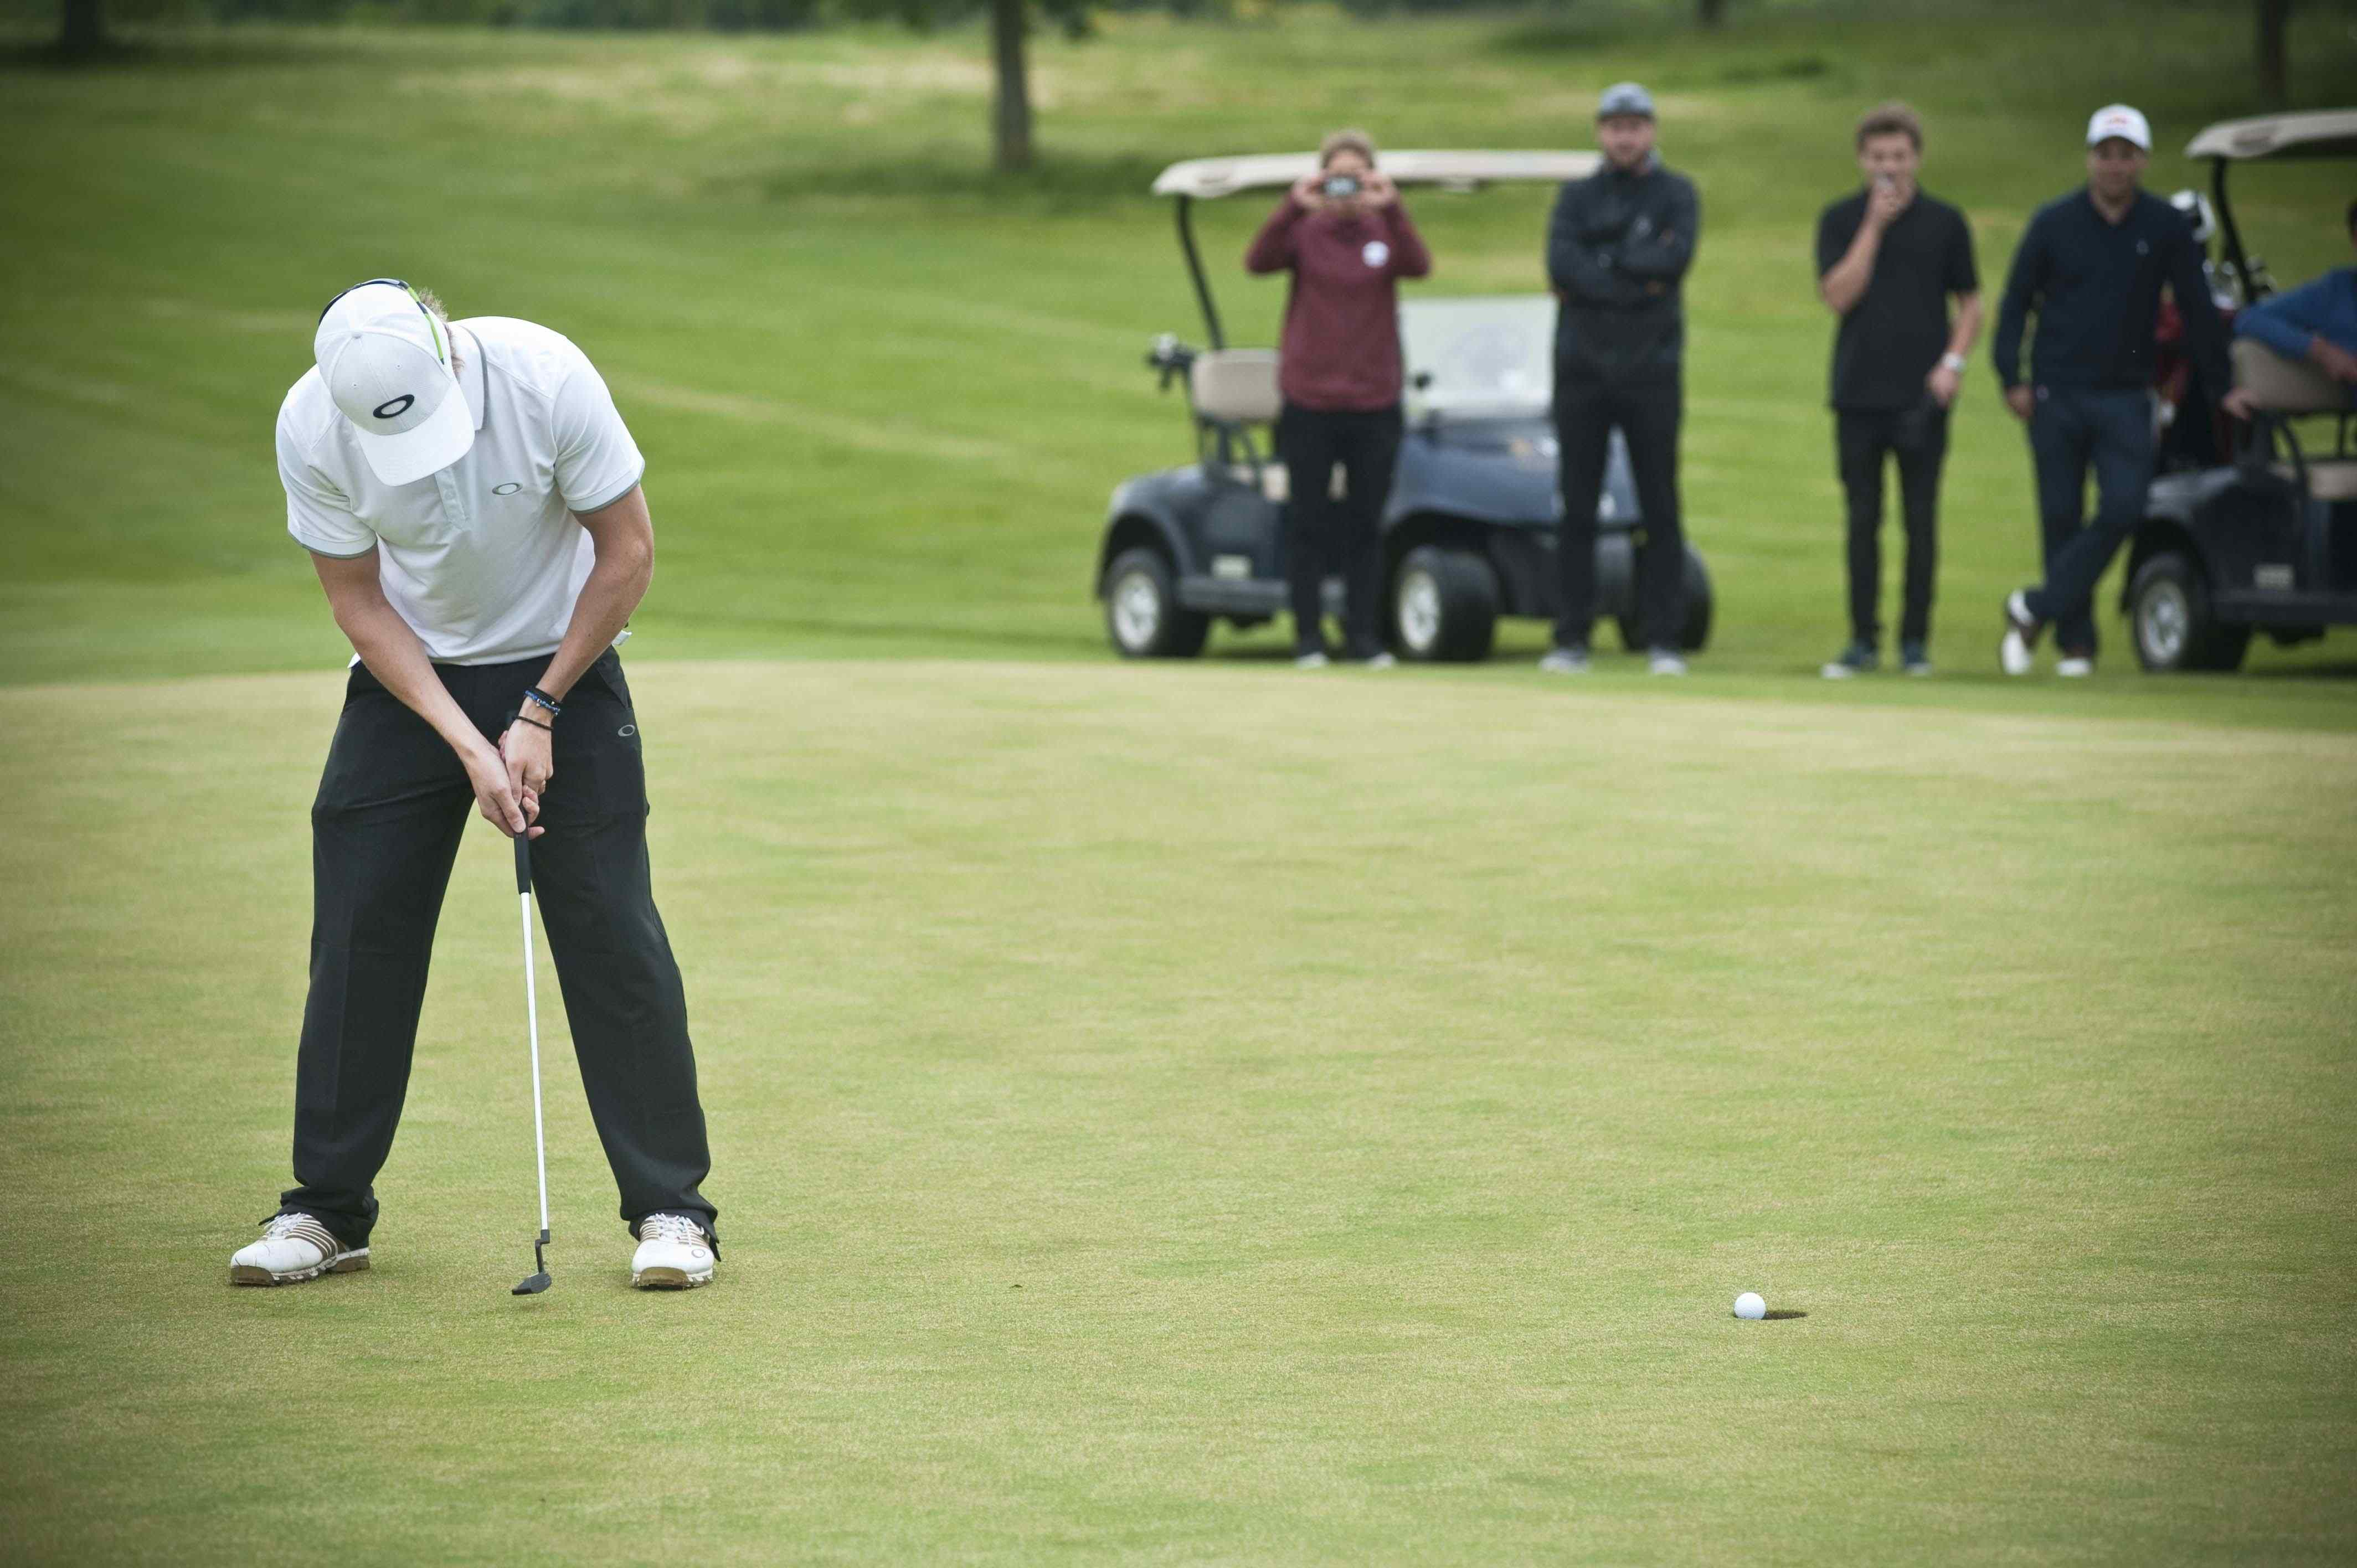 Oakley_KING_of_GREENS_2014_Ben Kilner_winning shot